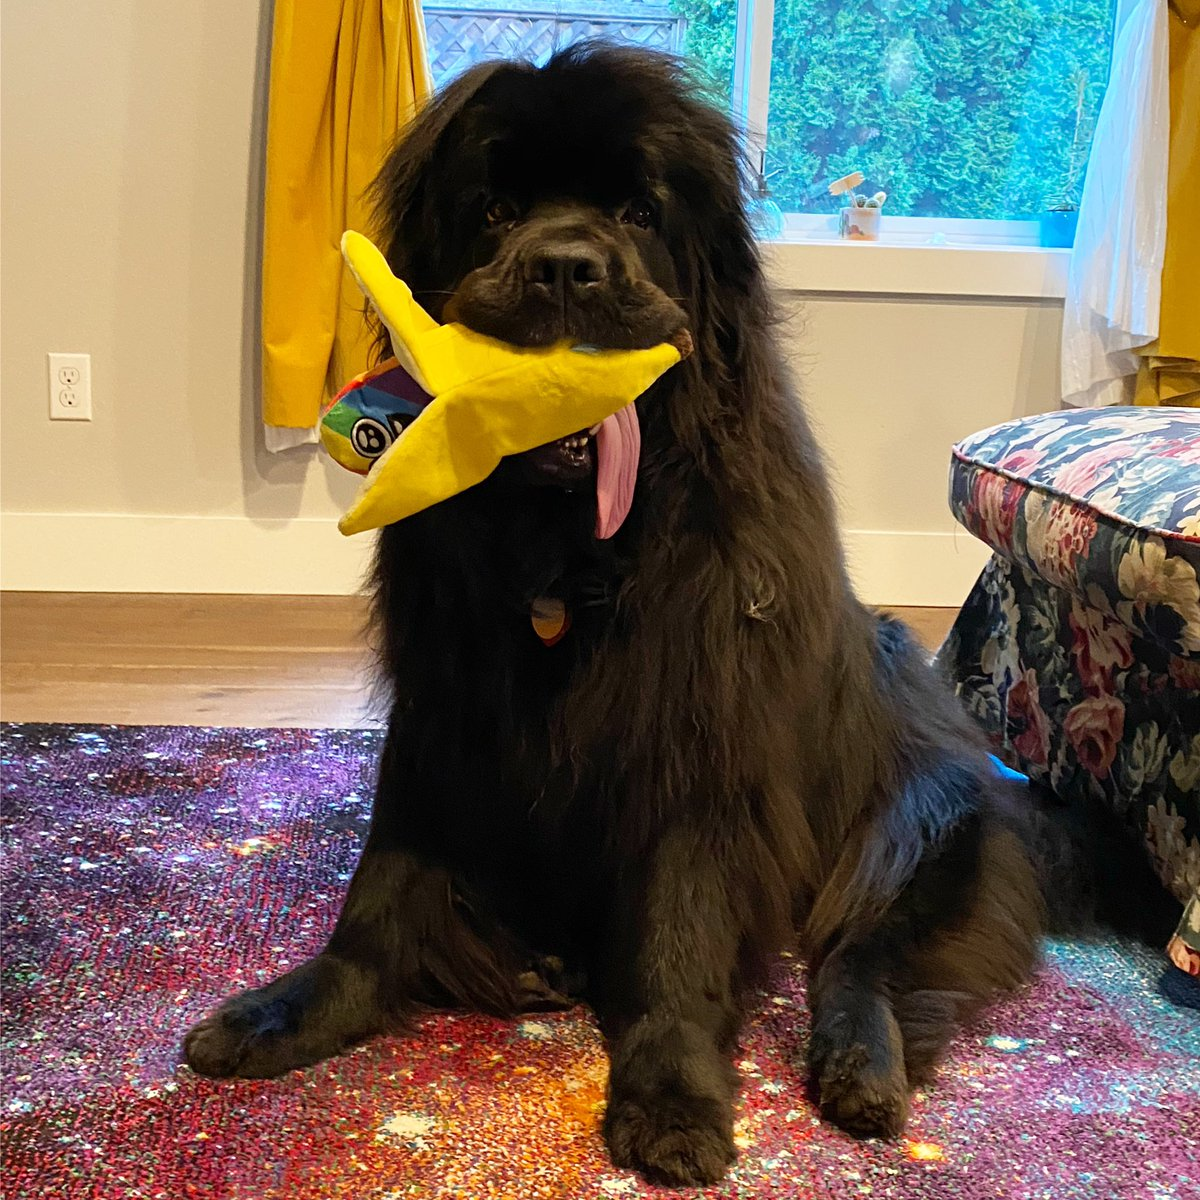 Sirius got a rainbow banana from @barkbox in the mail today! #barkbox #newfiesofinstagram #newfoundlandsofinstagram #newfoundlanddog #newfie #newfoundlanddogsofinstagram #newfies #giantdog #dogstagram #bigdogsofinstagram #newfie #bigdoggo #doggosofinstagram #doggosbeingdoggospic.twitter.com/tQG4lpI6ep